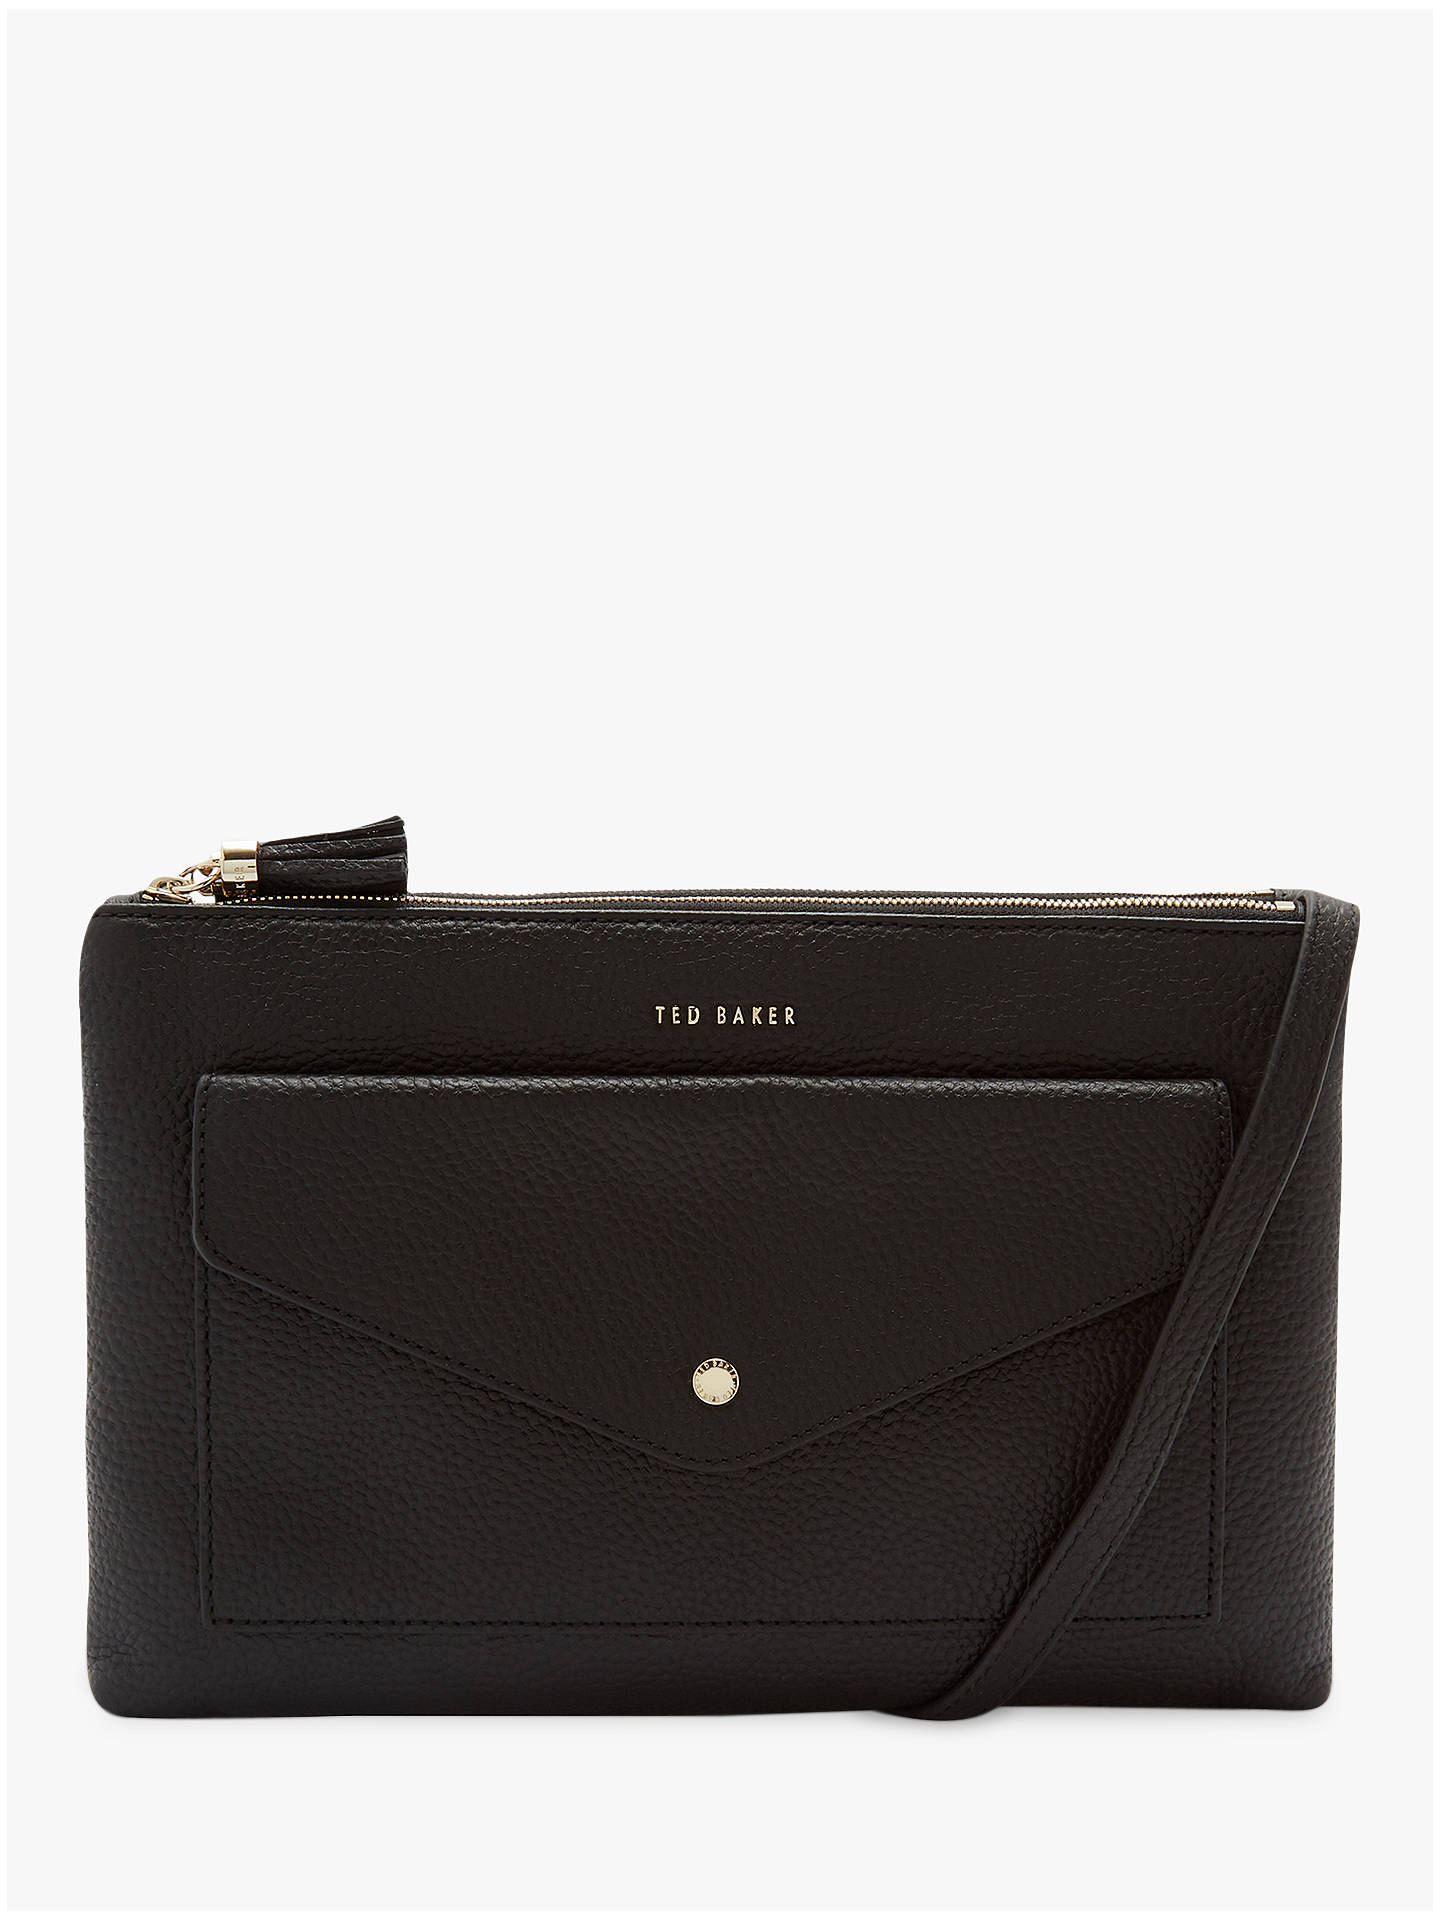 Buy Ted Baker Marllie Leather Double Zip Cross Body Bag, Black Online at johnlewis.com